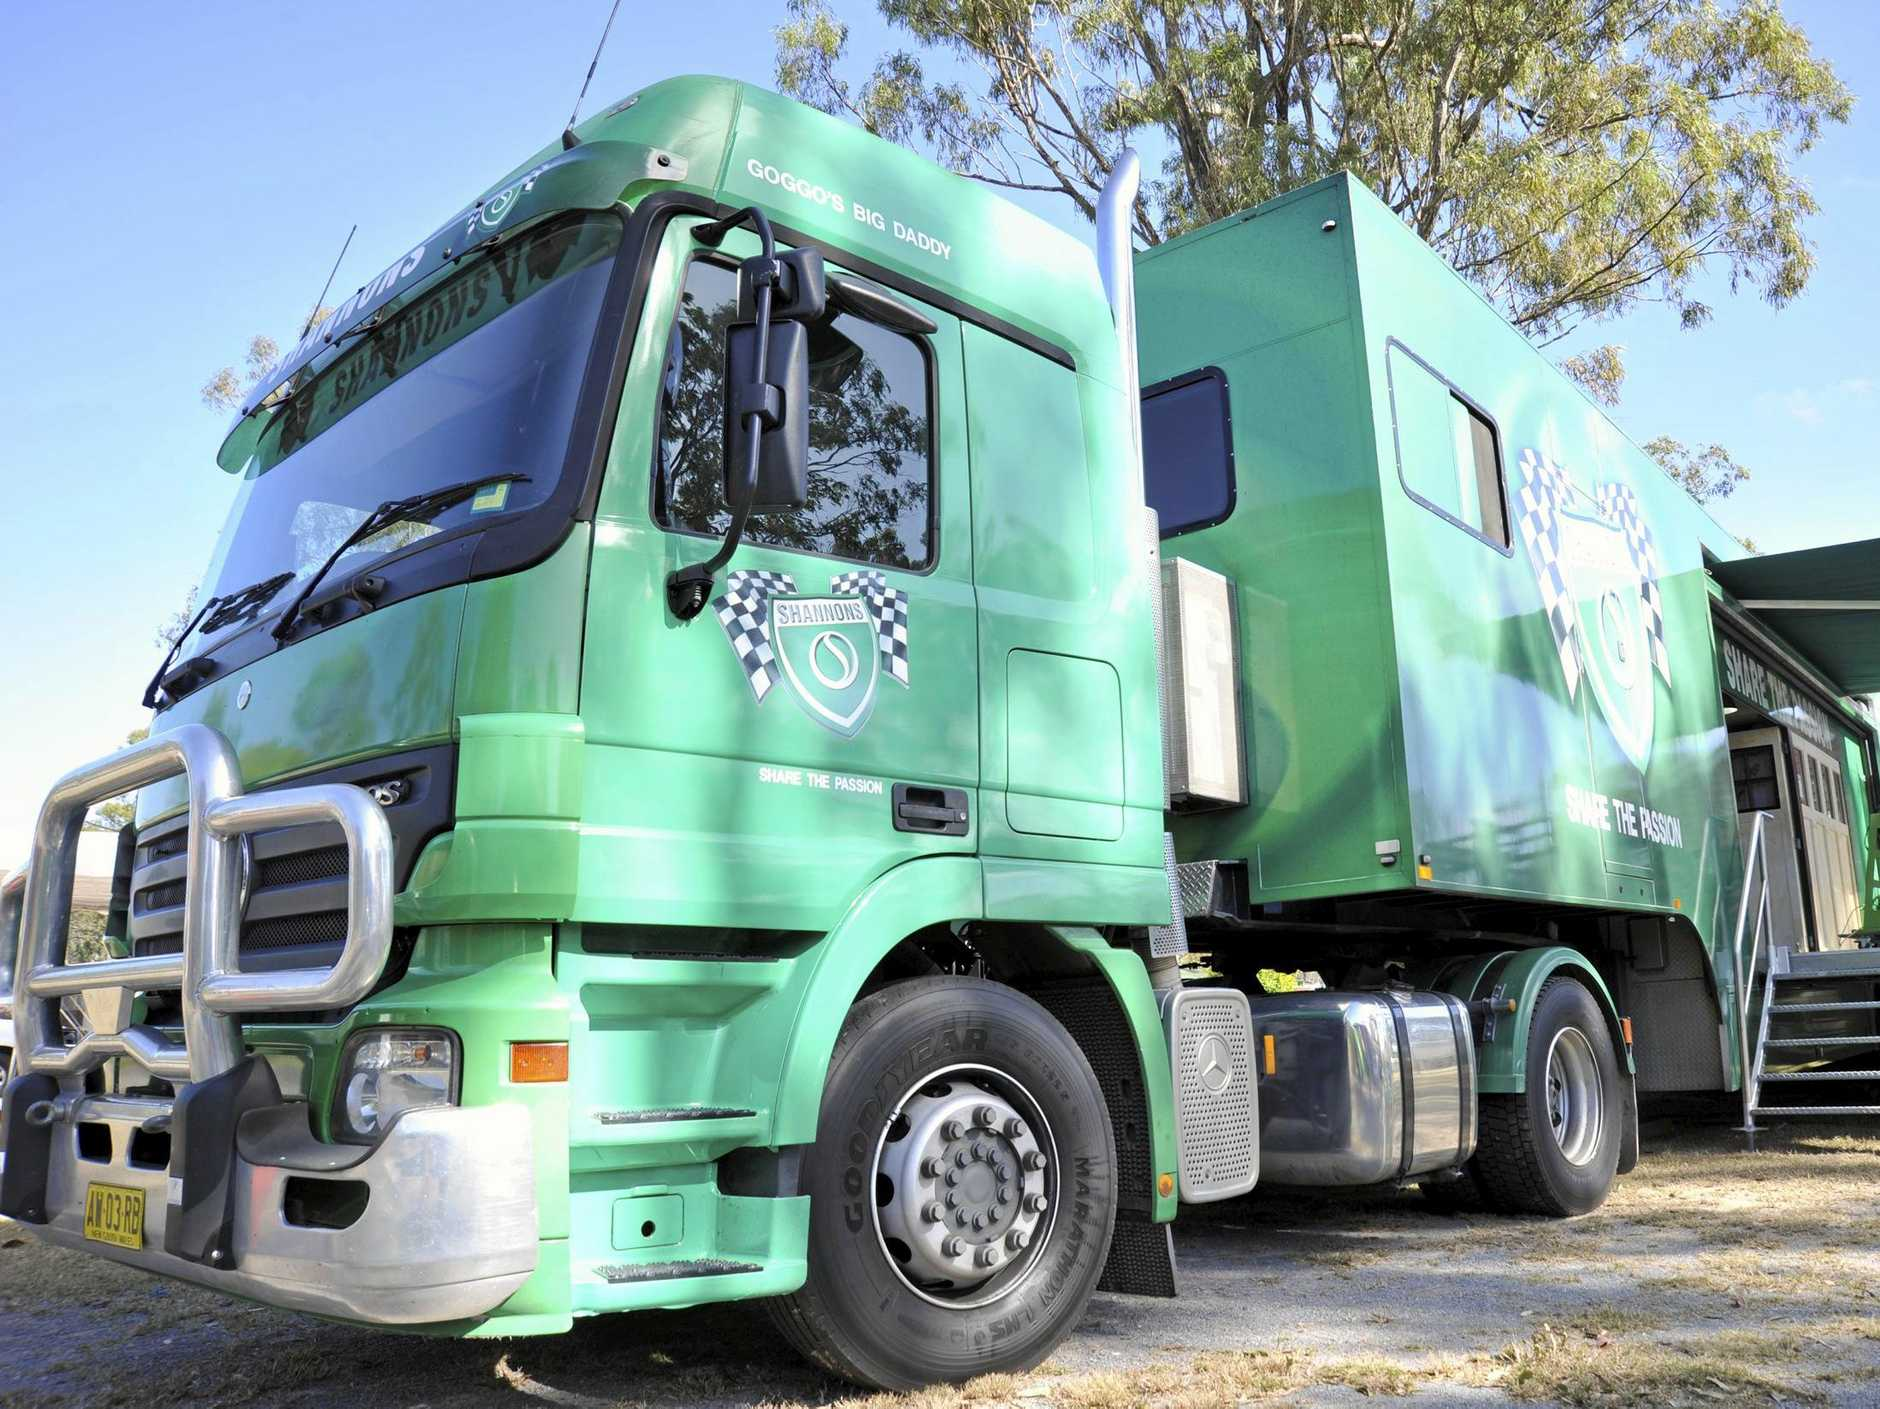 SUPER RIG: Shannons Super Rig is coming to Wondai.